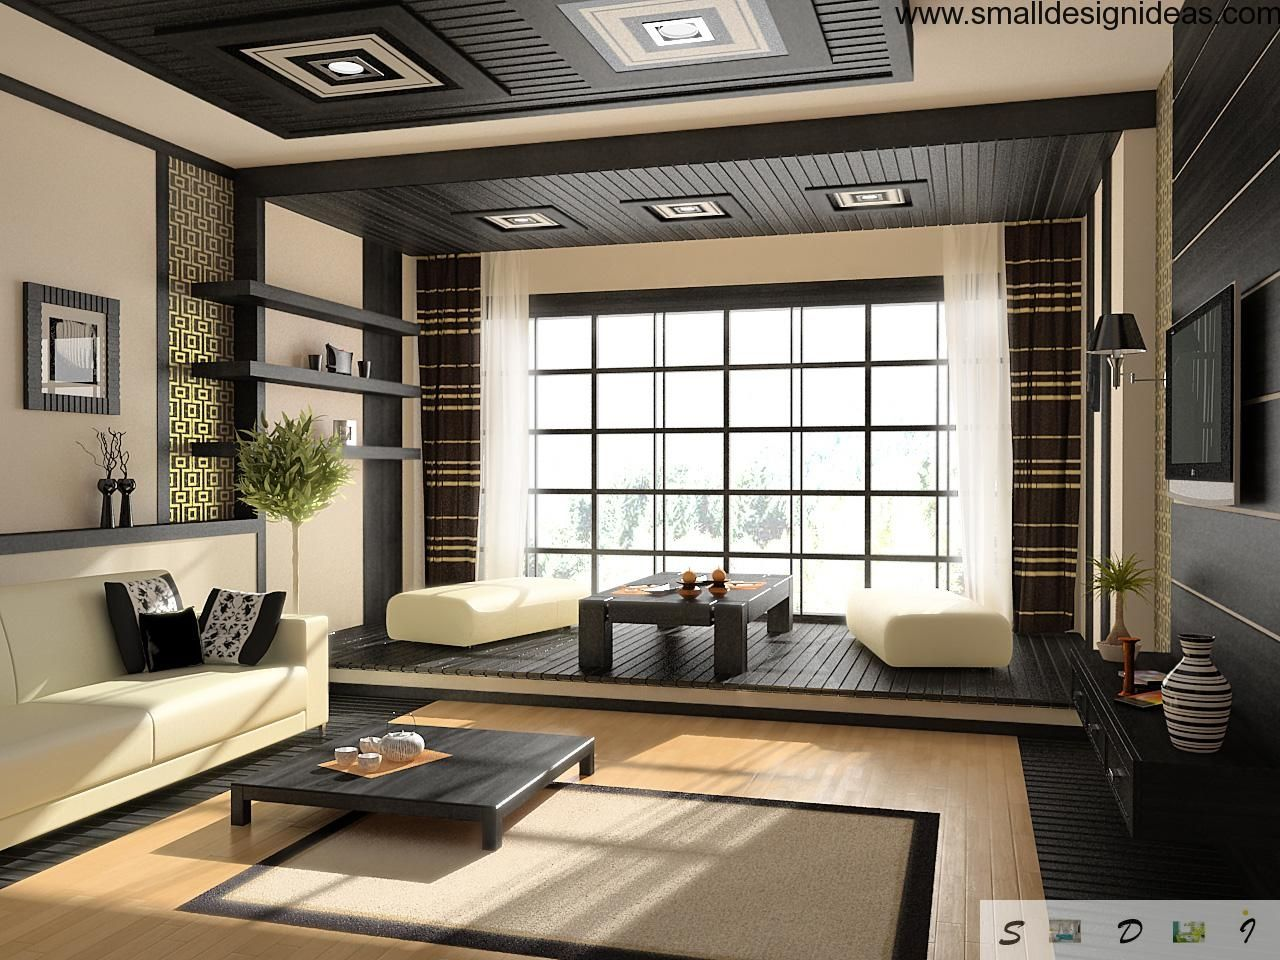 Amazing Interior Design Alluring 10 Things To Know Before Remodeling Your Interior Into Japanese Decorating Inspiration